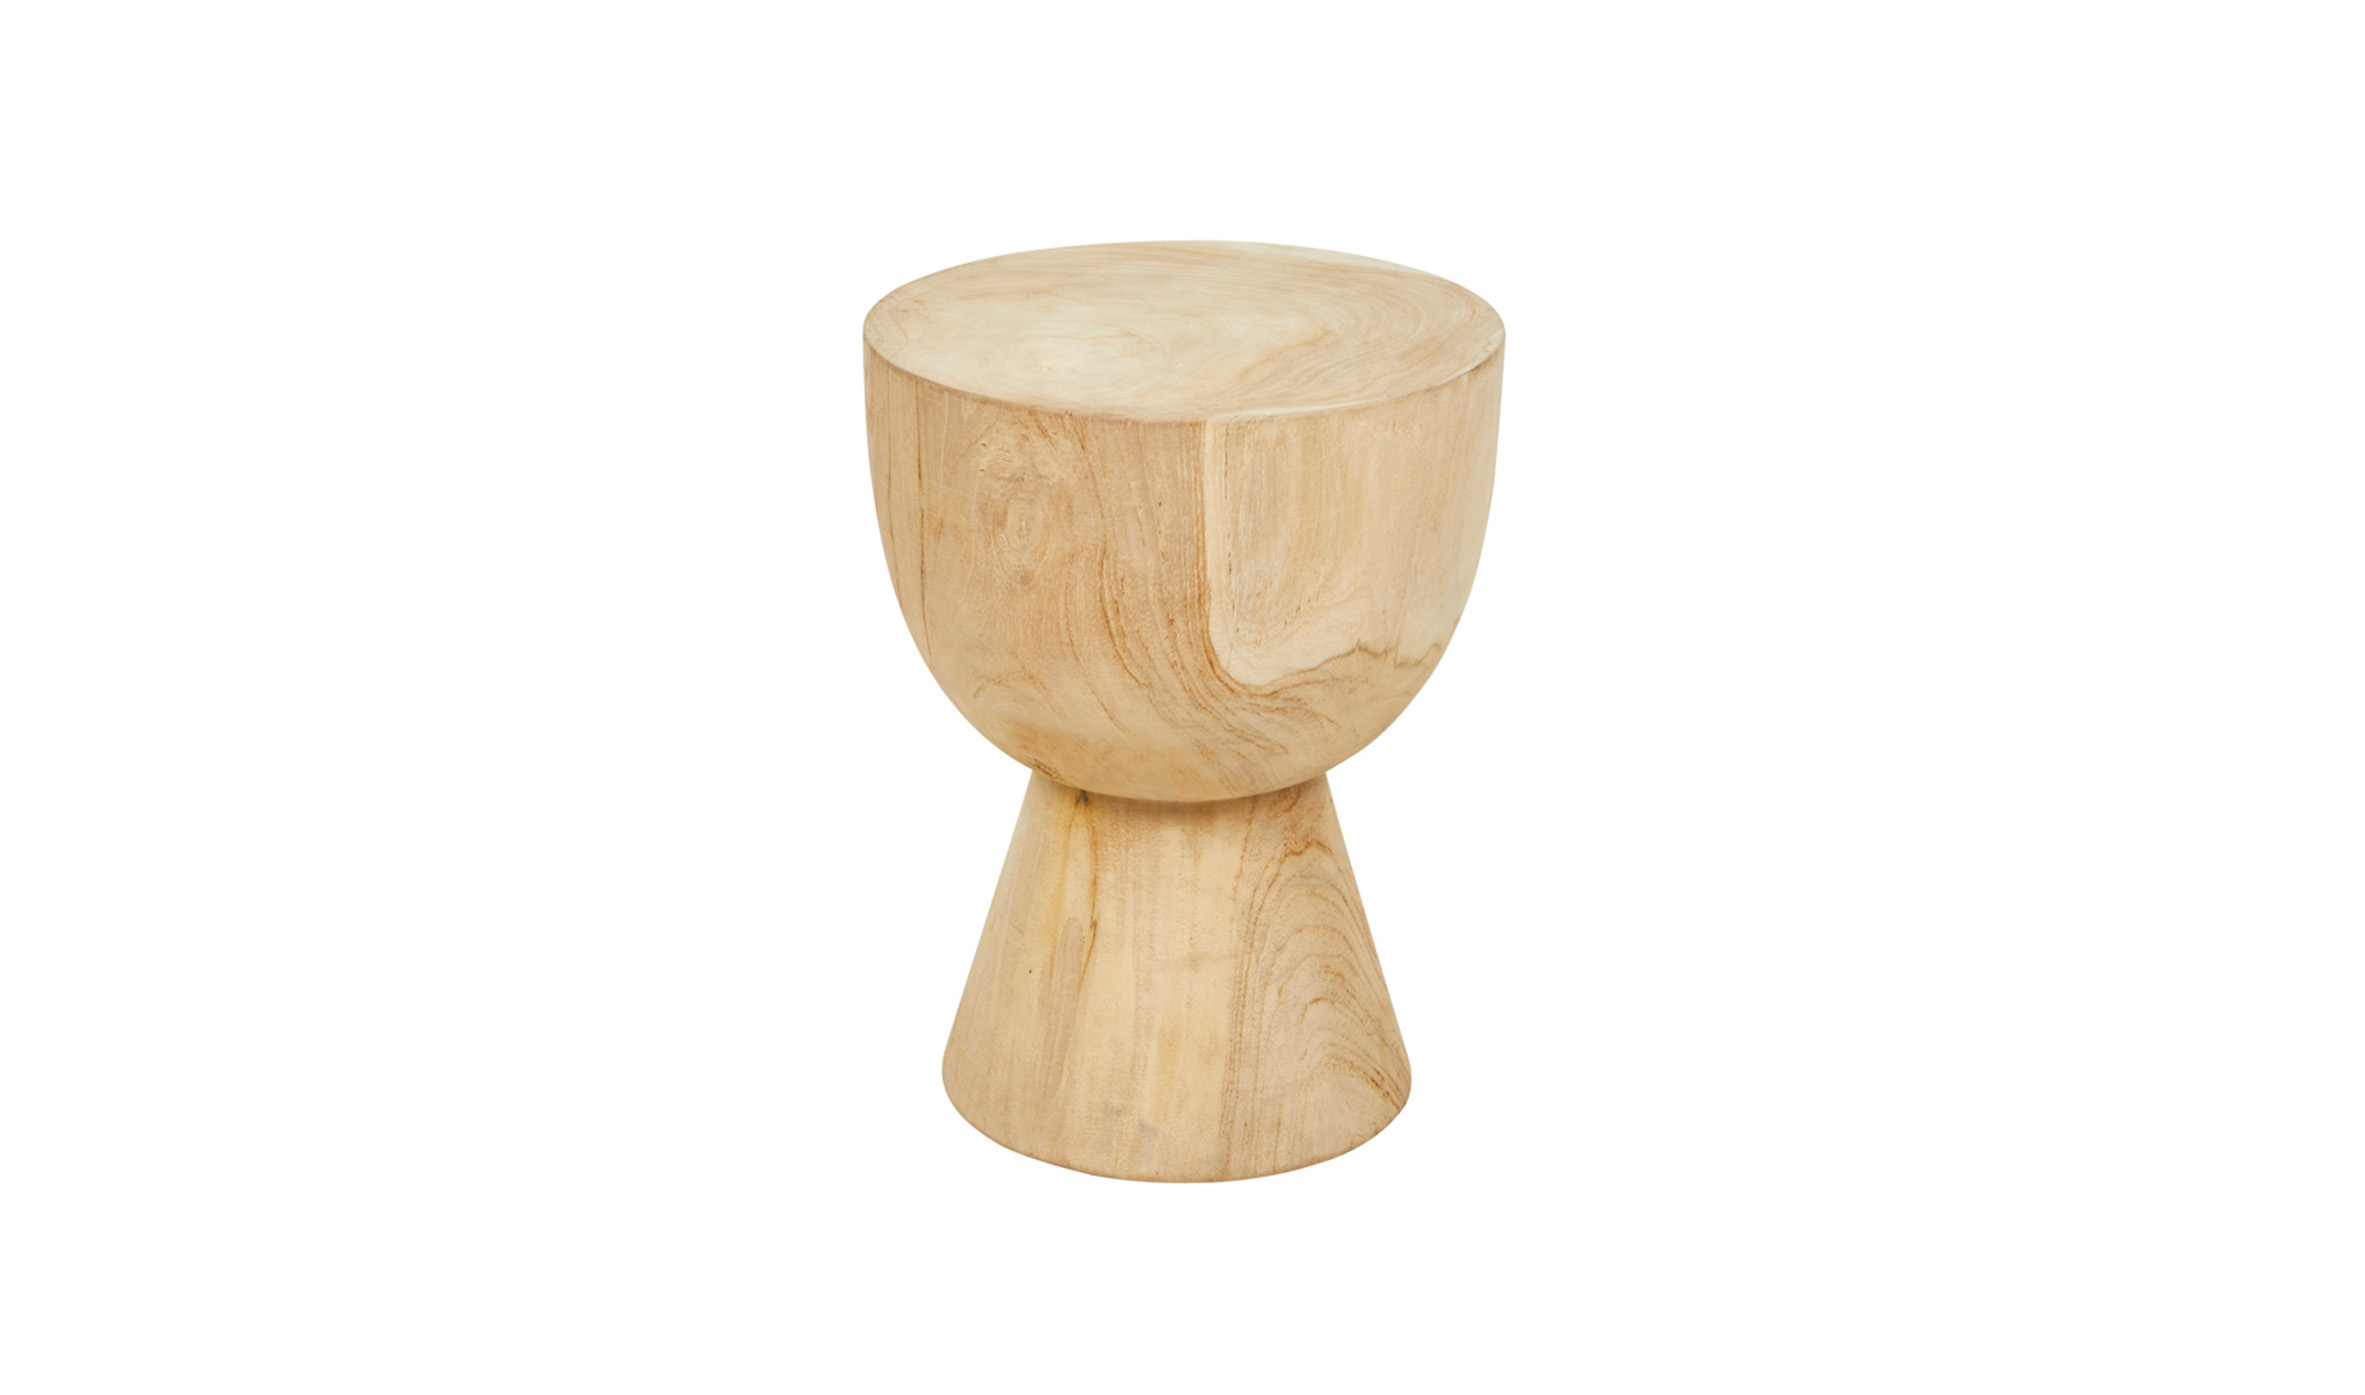 Furniture Thumbnails outdoor-dining-chairs-benches-and-stools-southport-goblet